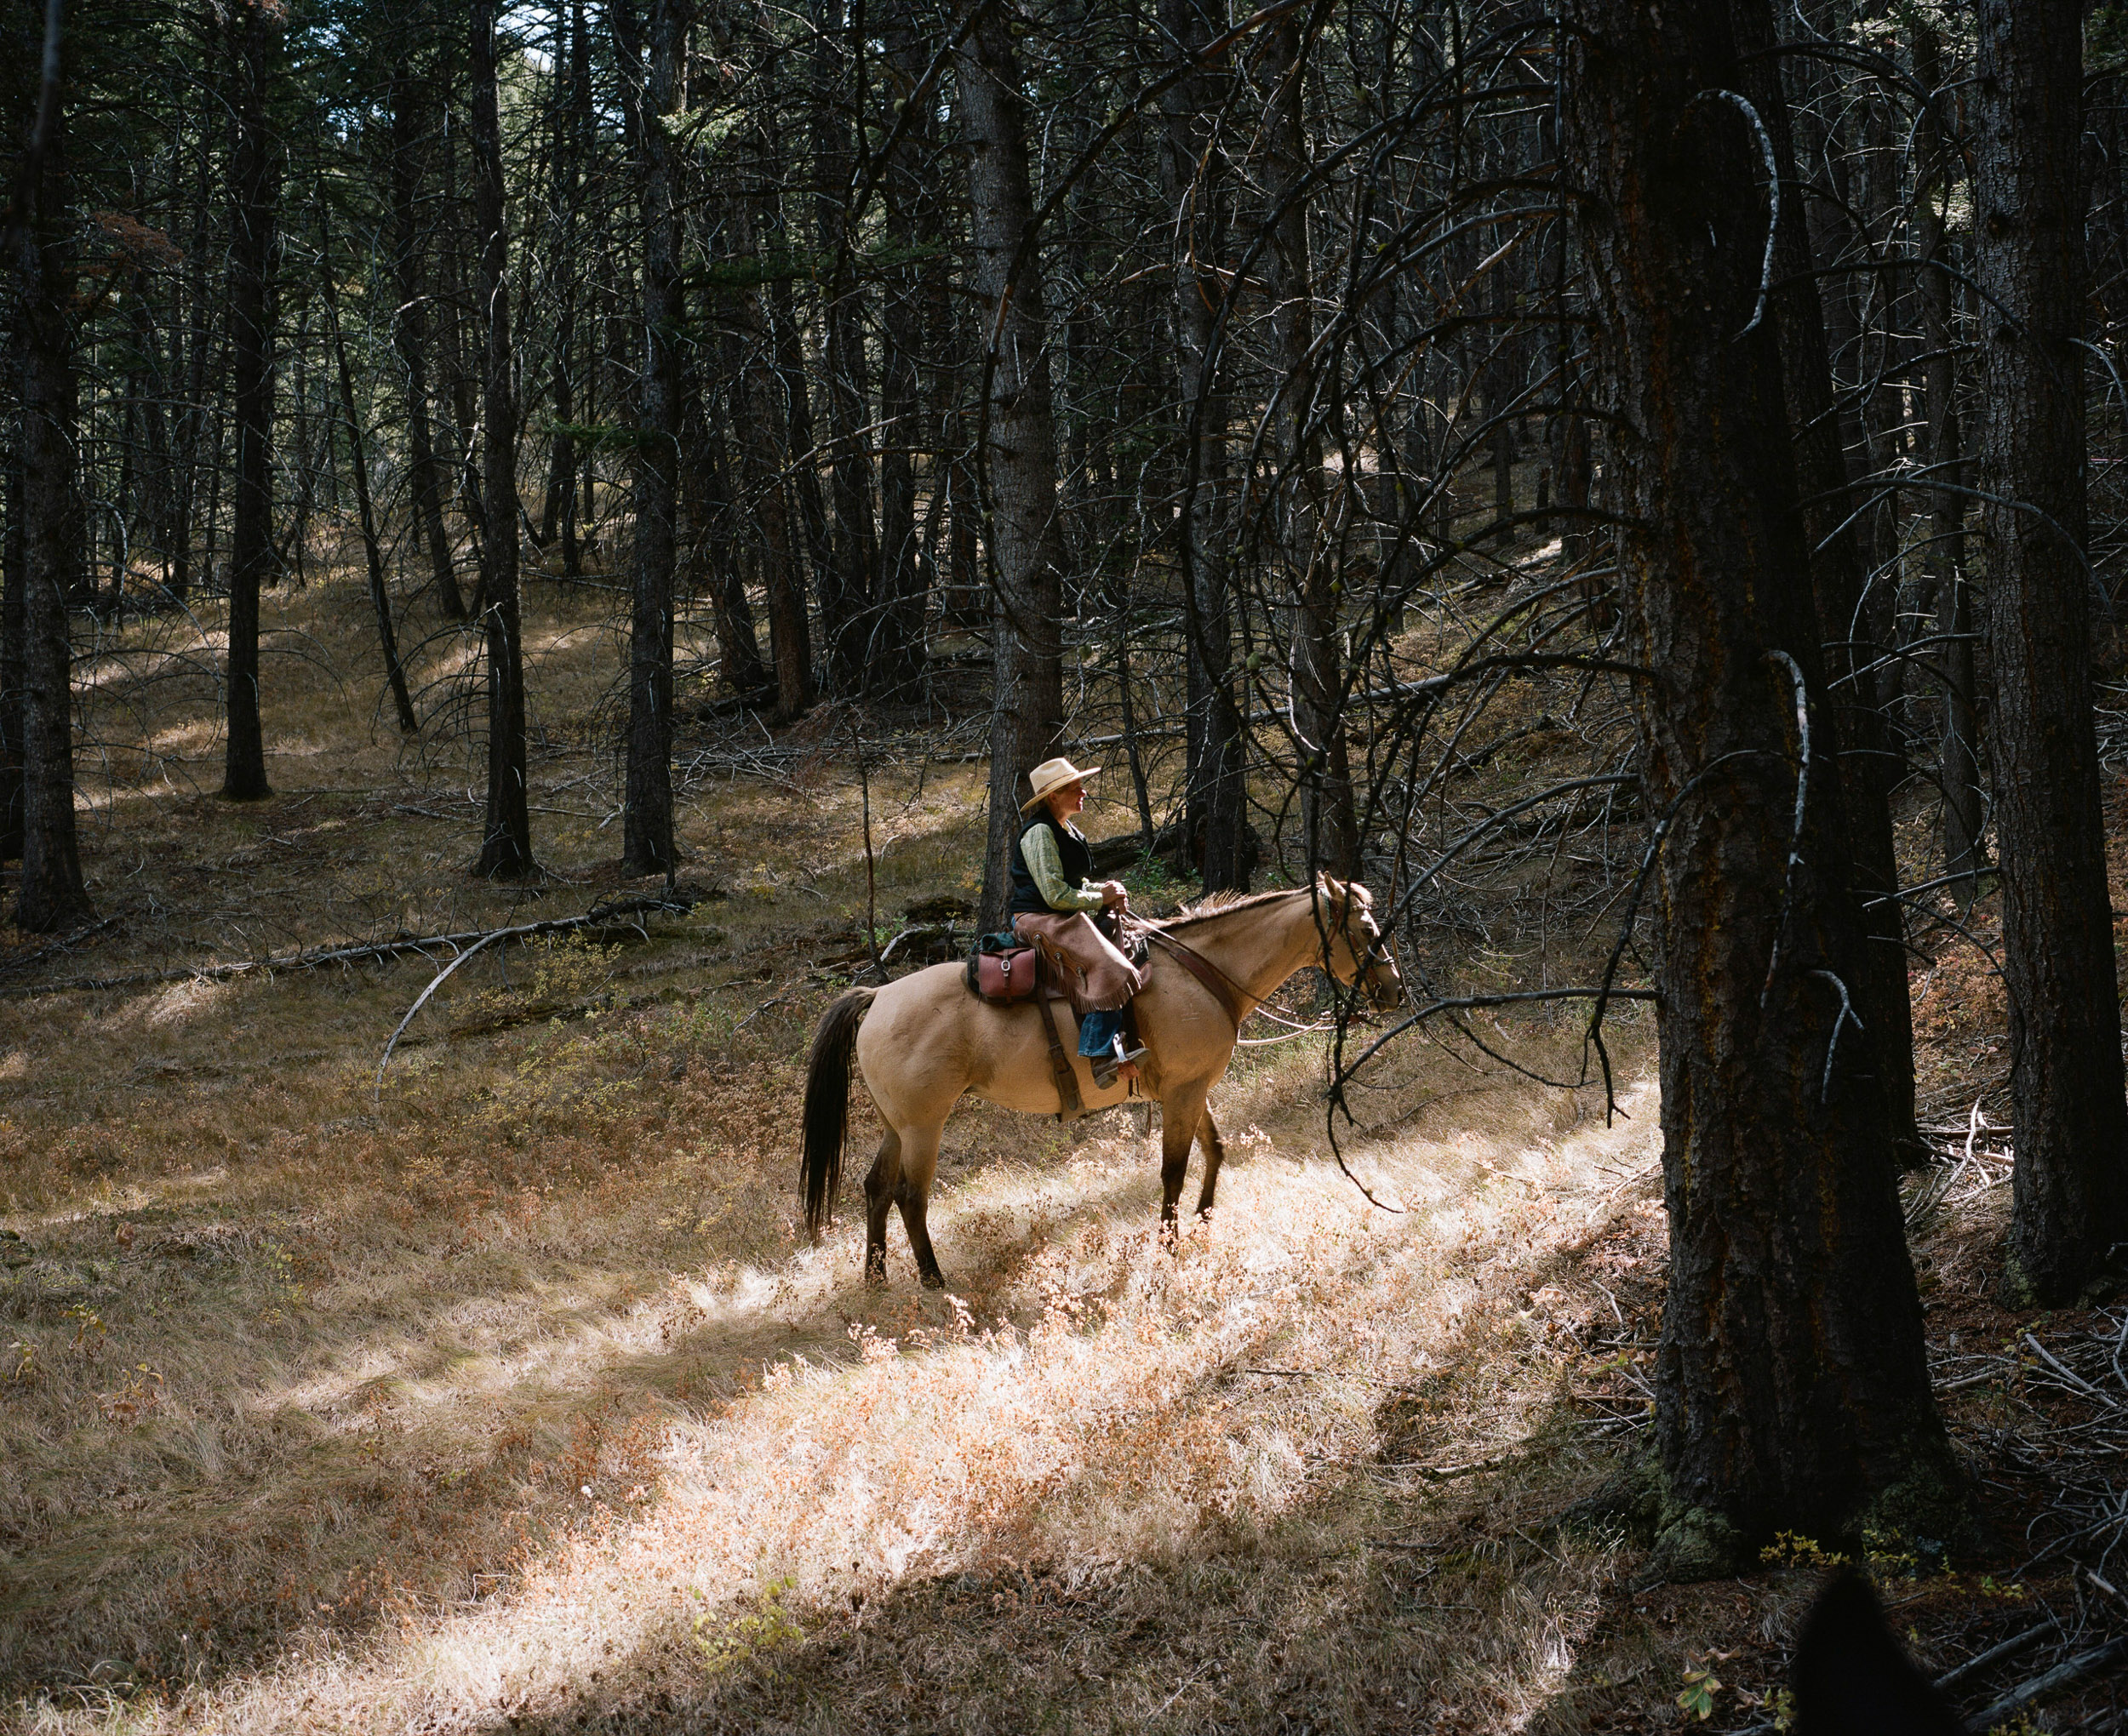 Woman on a horse in dry grass in a patch of sunlight